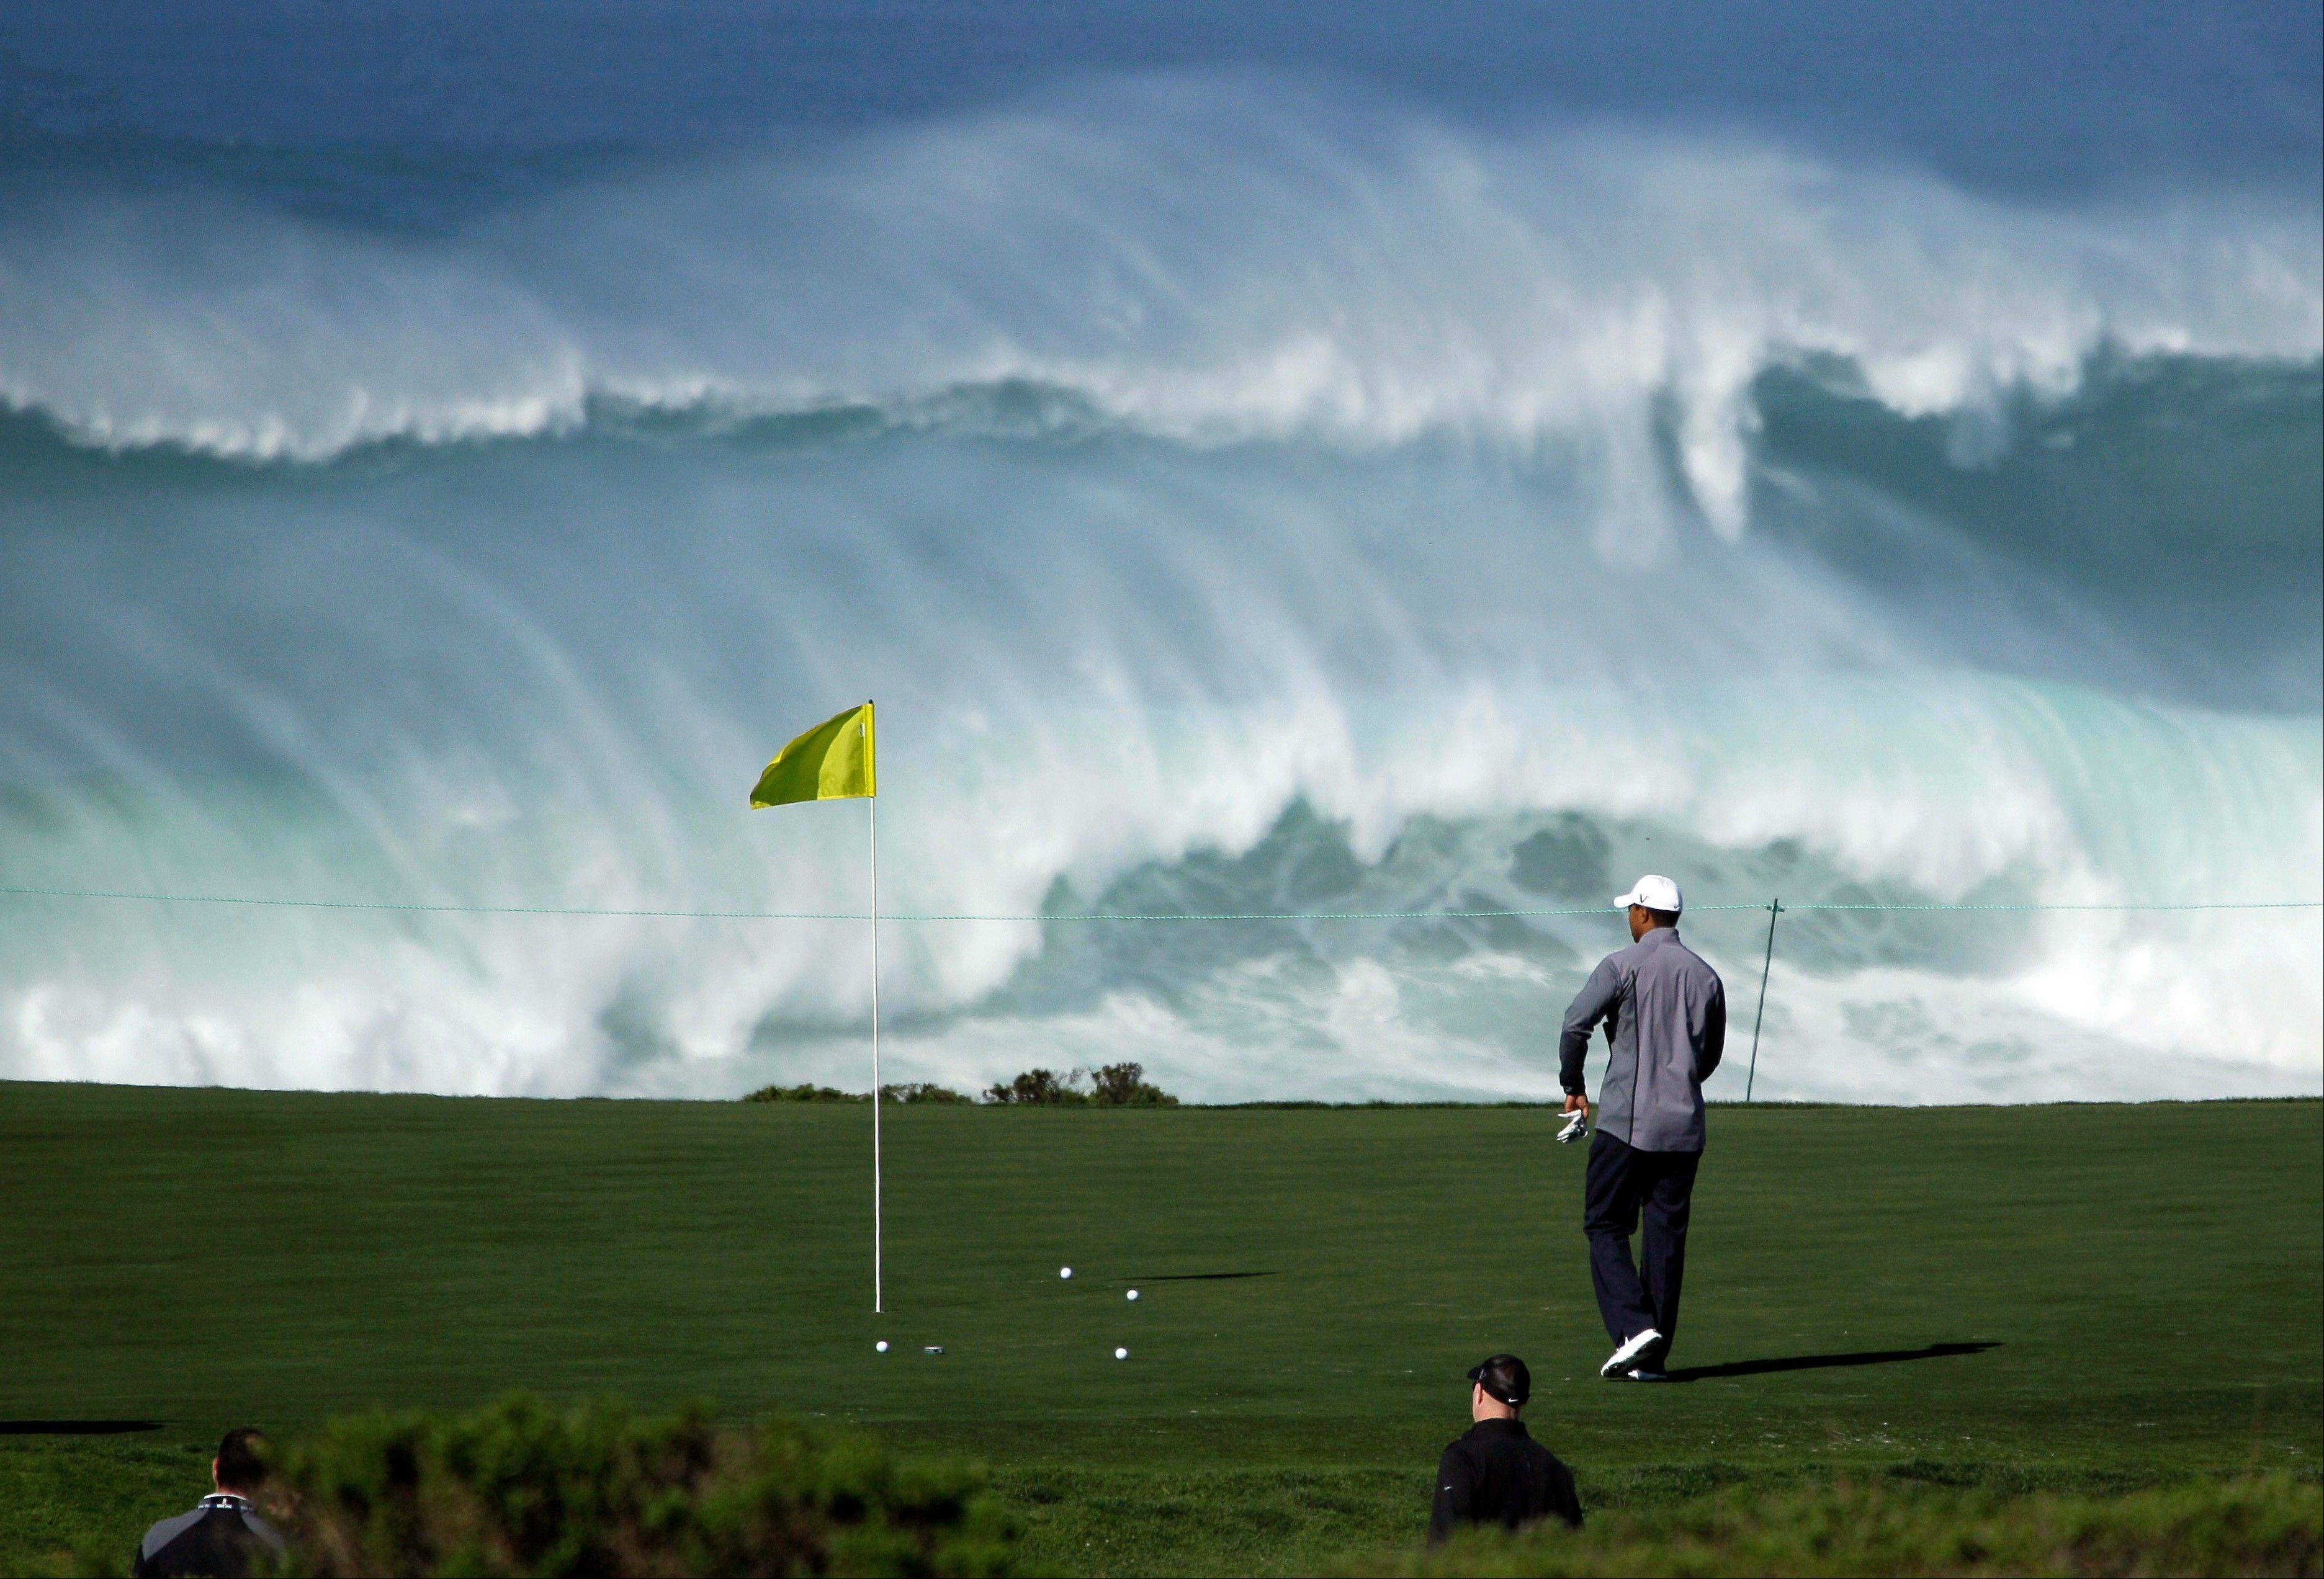 Tiger Woods walks to his ball on the 15th green of the Monterey Peninsula Country Club shore course Wednesday as waves crash in the background during a practice round at the AT&T Pebble Beach National Pro-Am PGA Tour golf tournament.